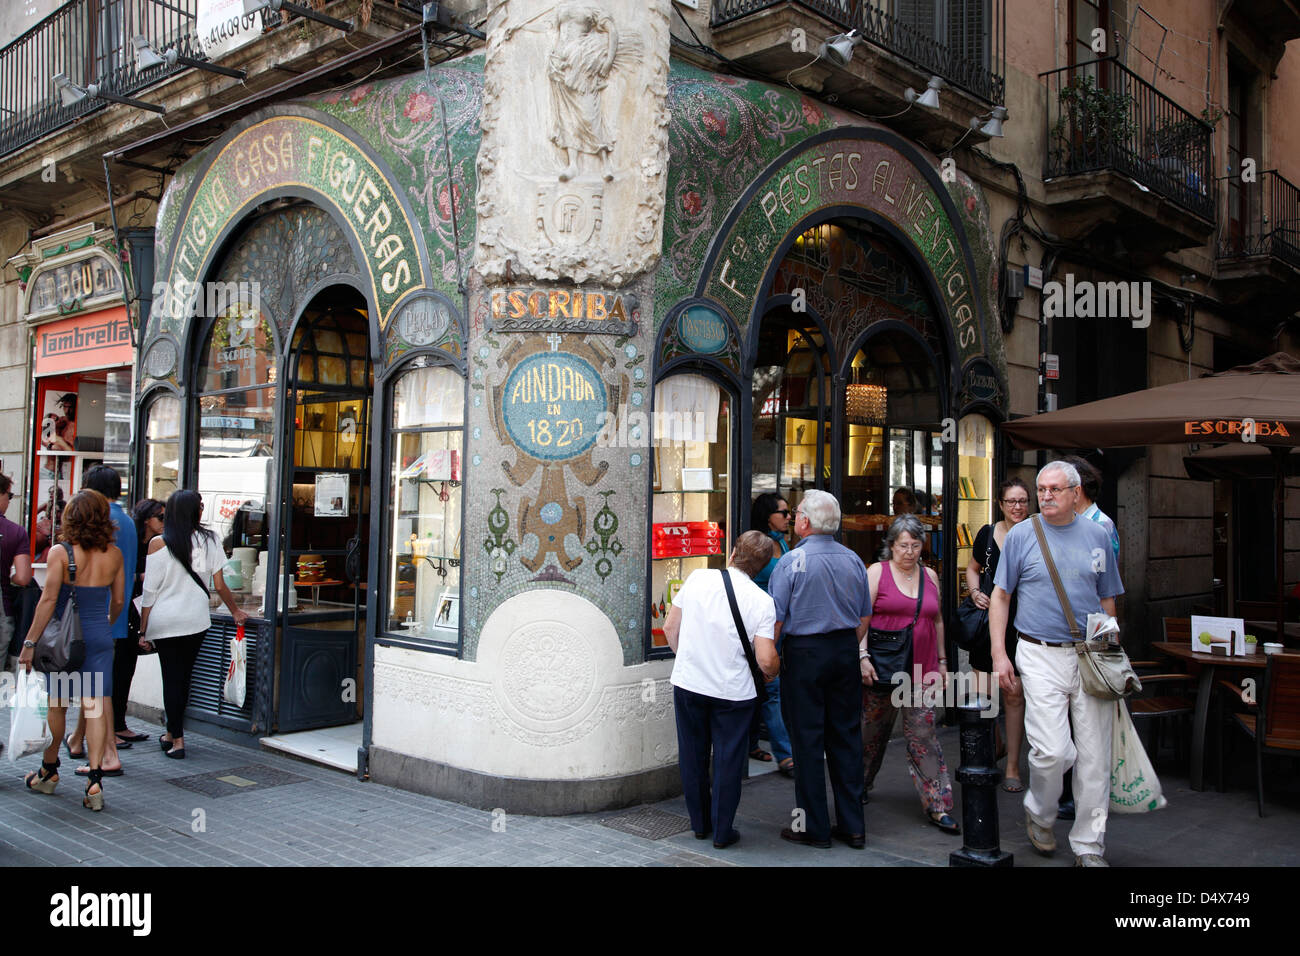 Pasteleria Escriba, at Ramblas Barcelona, Spain - Stock Image